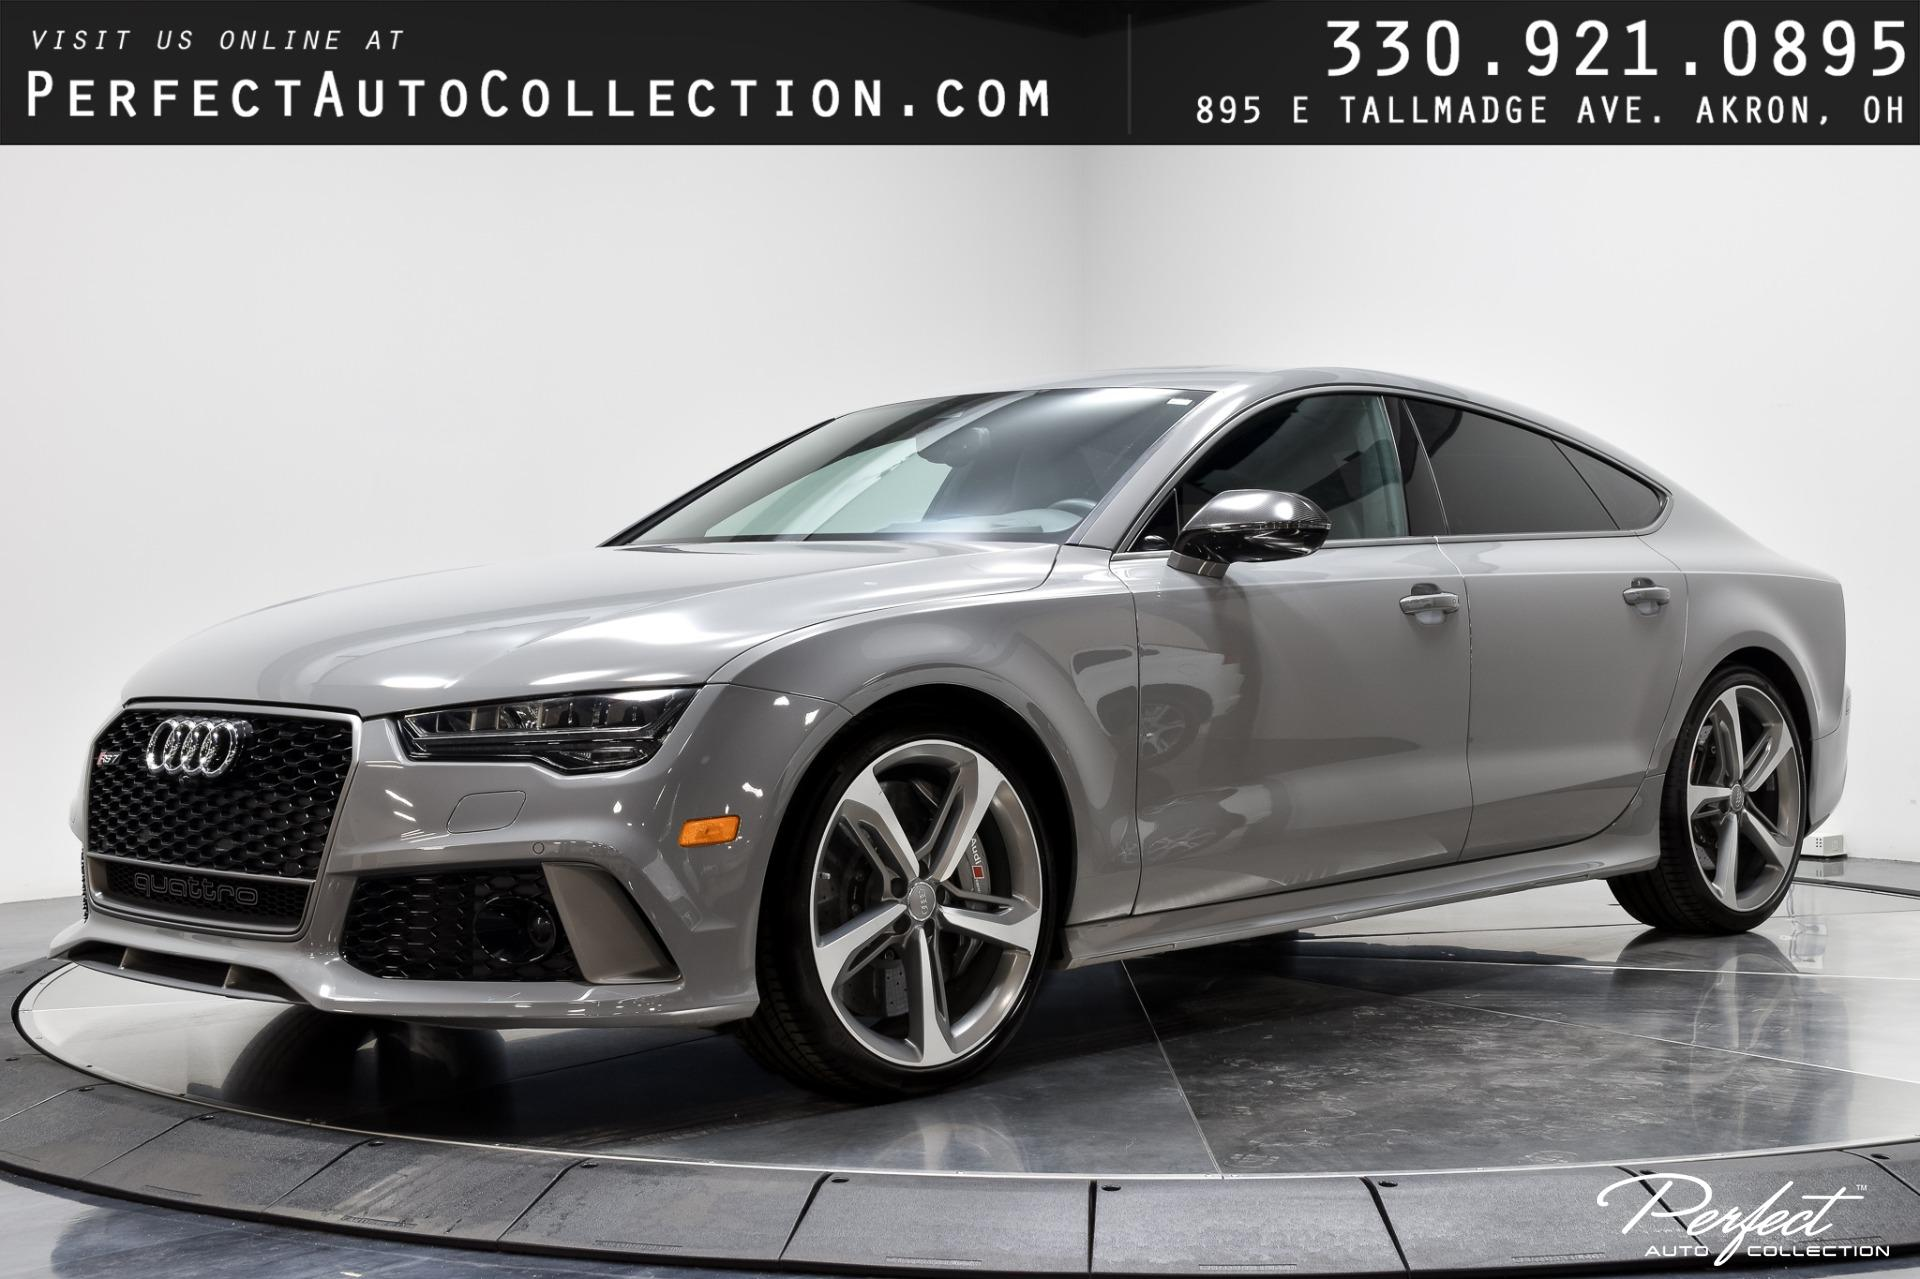 Used 2016 Audi RS 7 quattro performance Prestige for sale $74,495 at Perfect Auto Collection in Akron OH 44310 1